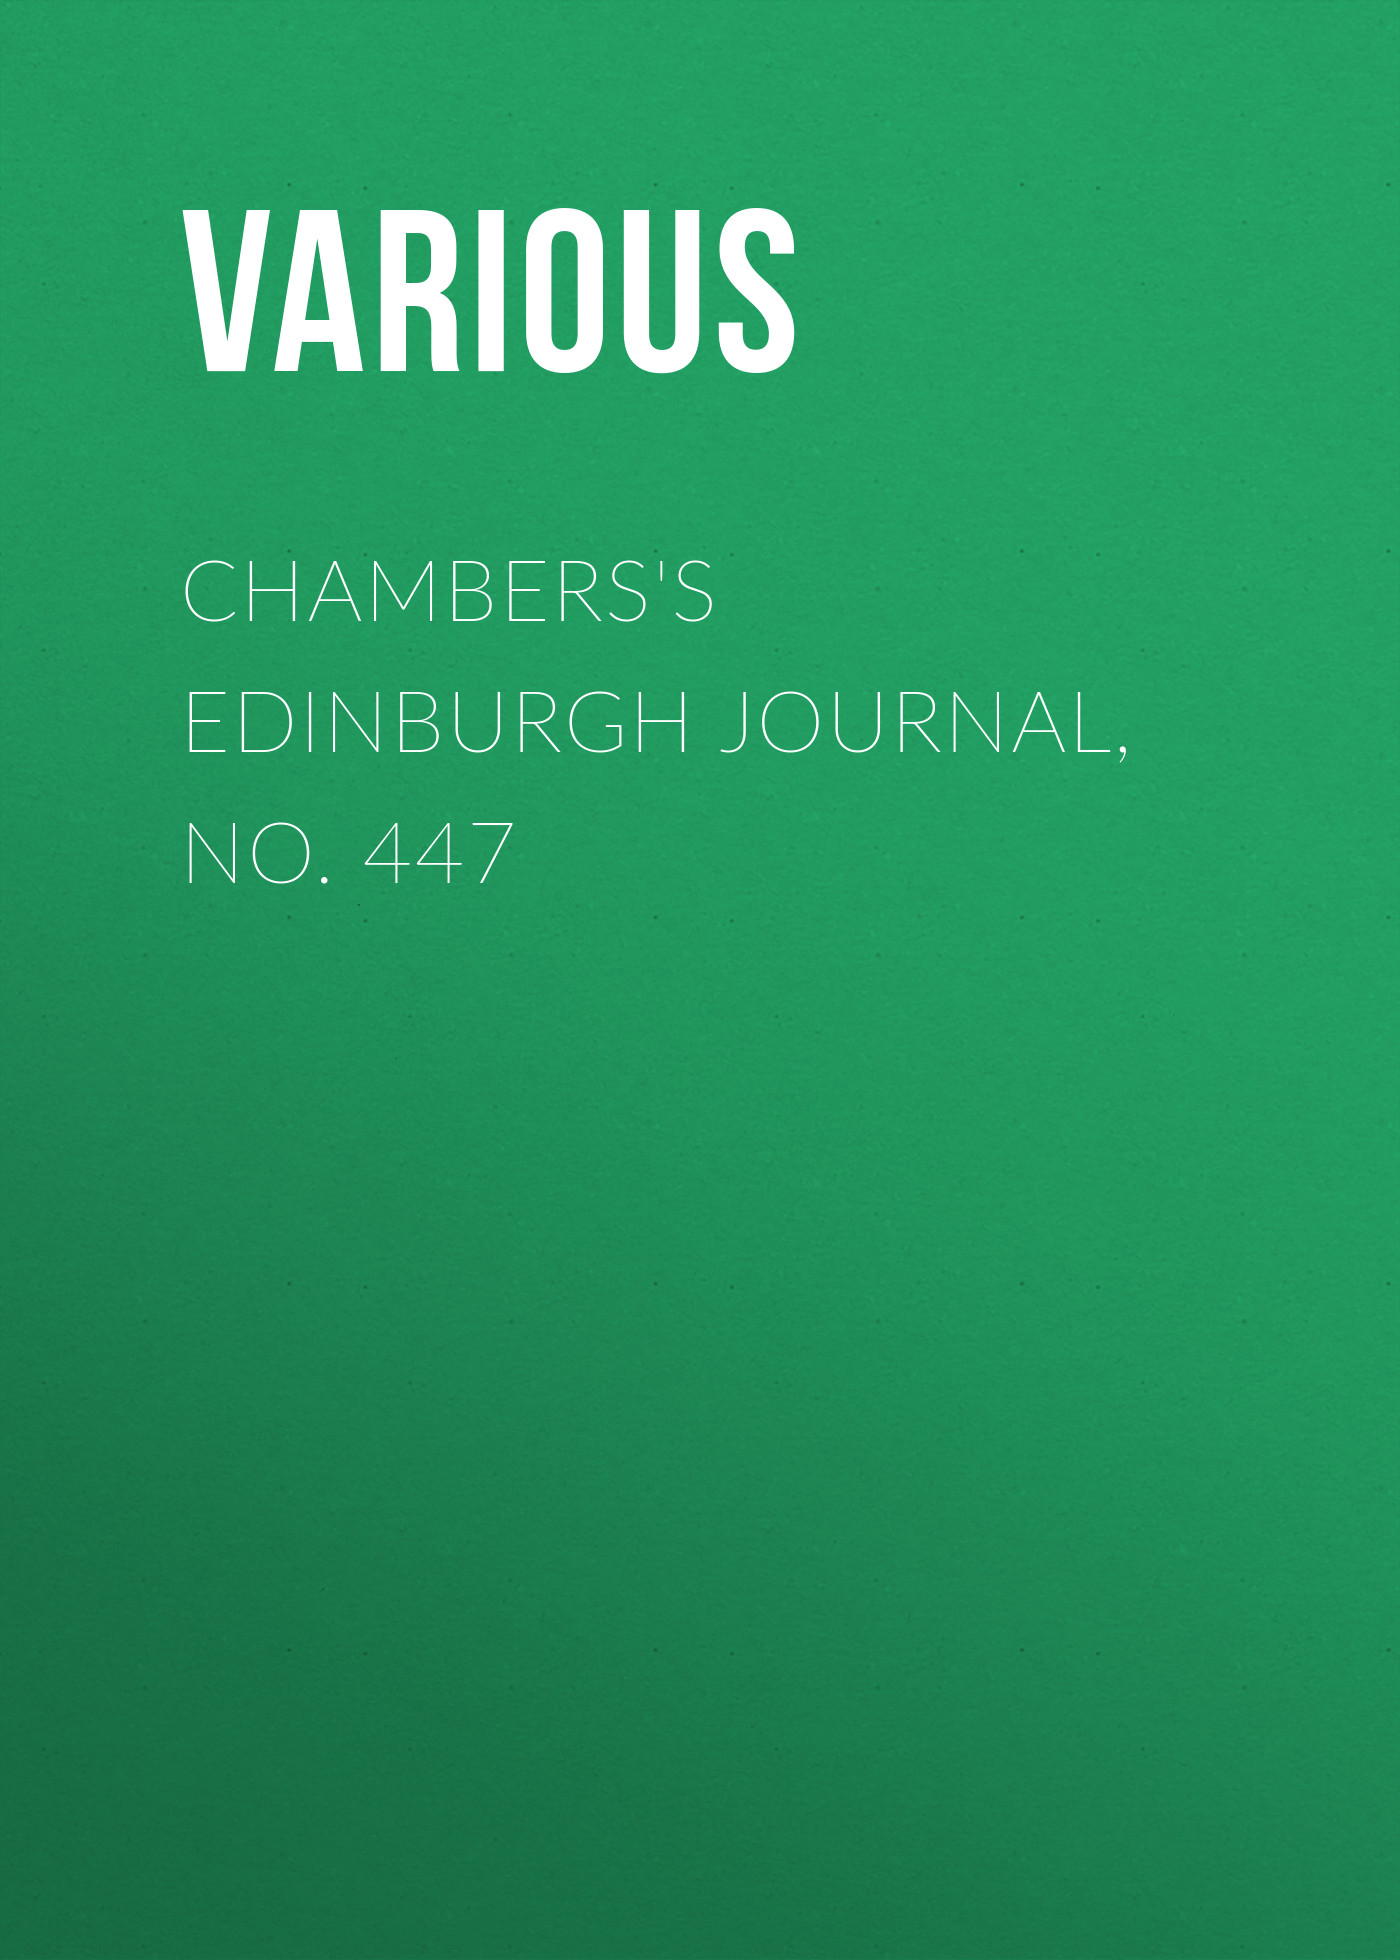 купить Various Chambers's Edinburgh Journal, No. 447 по цене 0 рублей